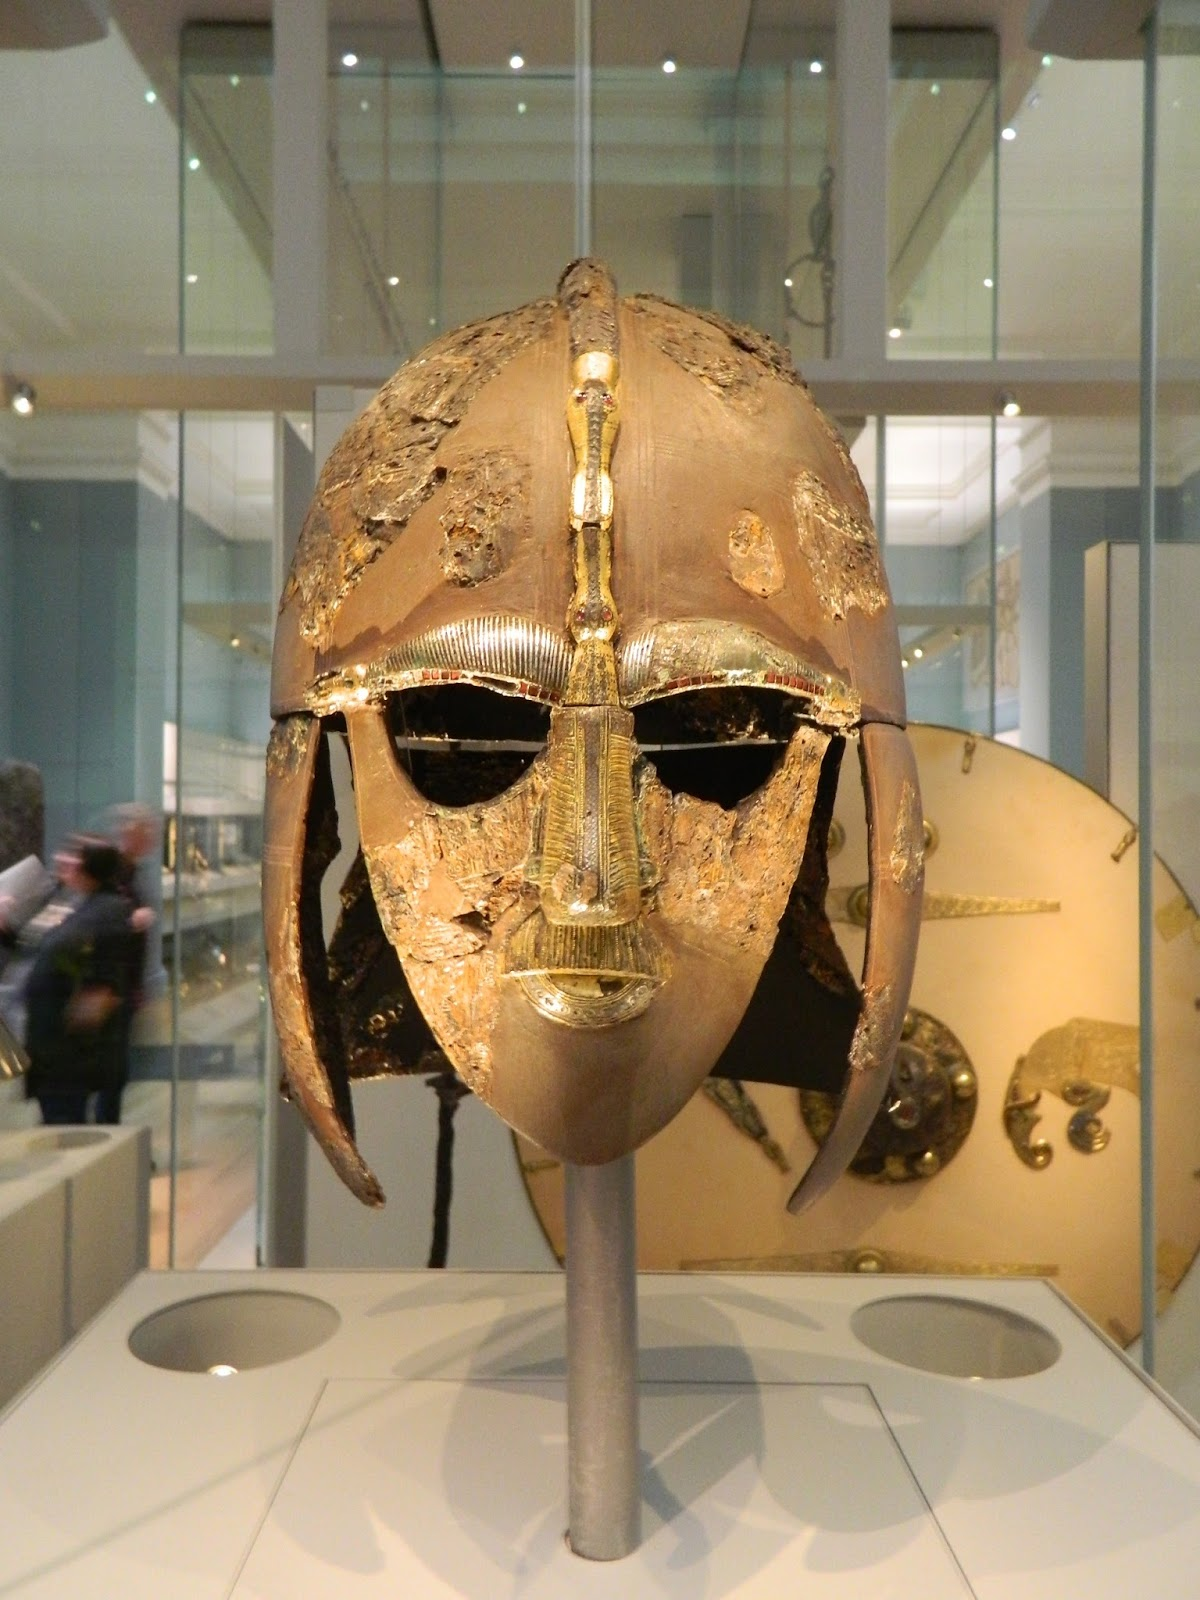 Mike's Modeling: British Museum #1 / Sutton Hoo Burial